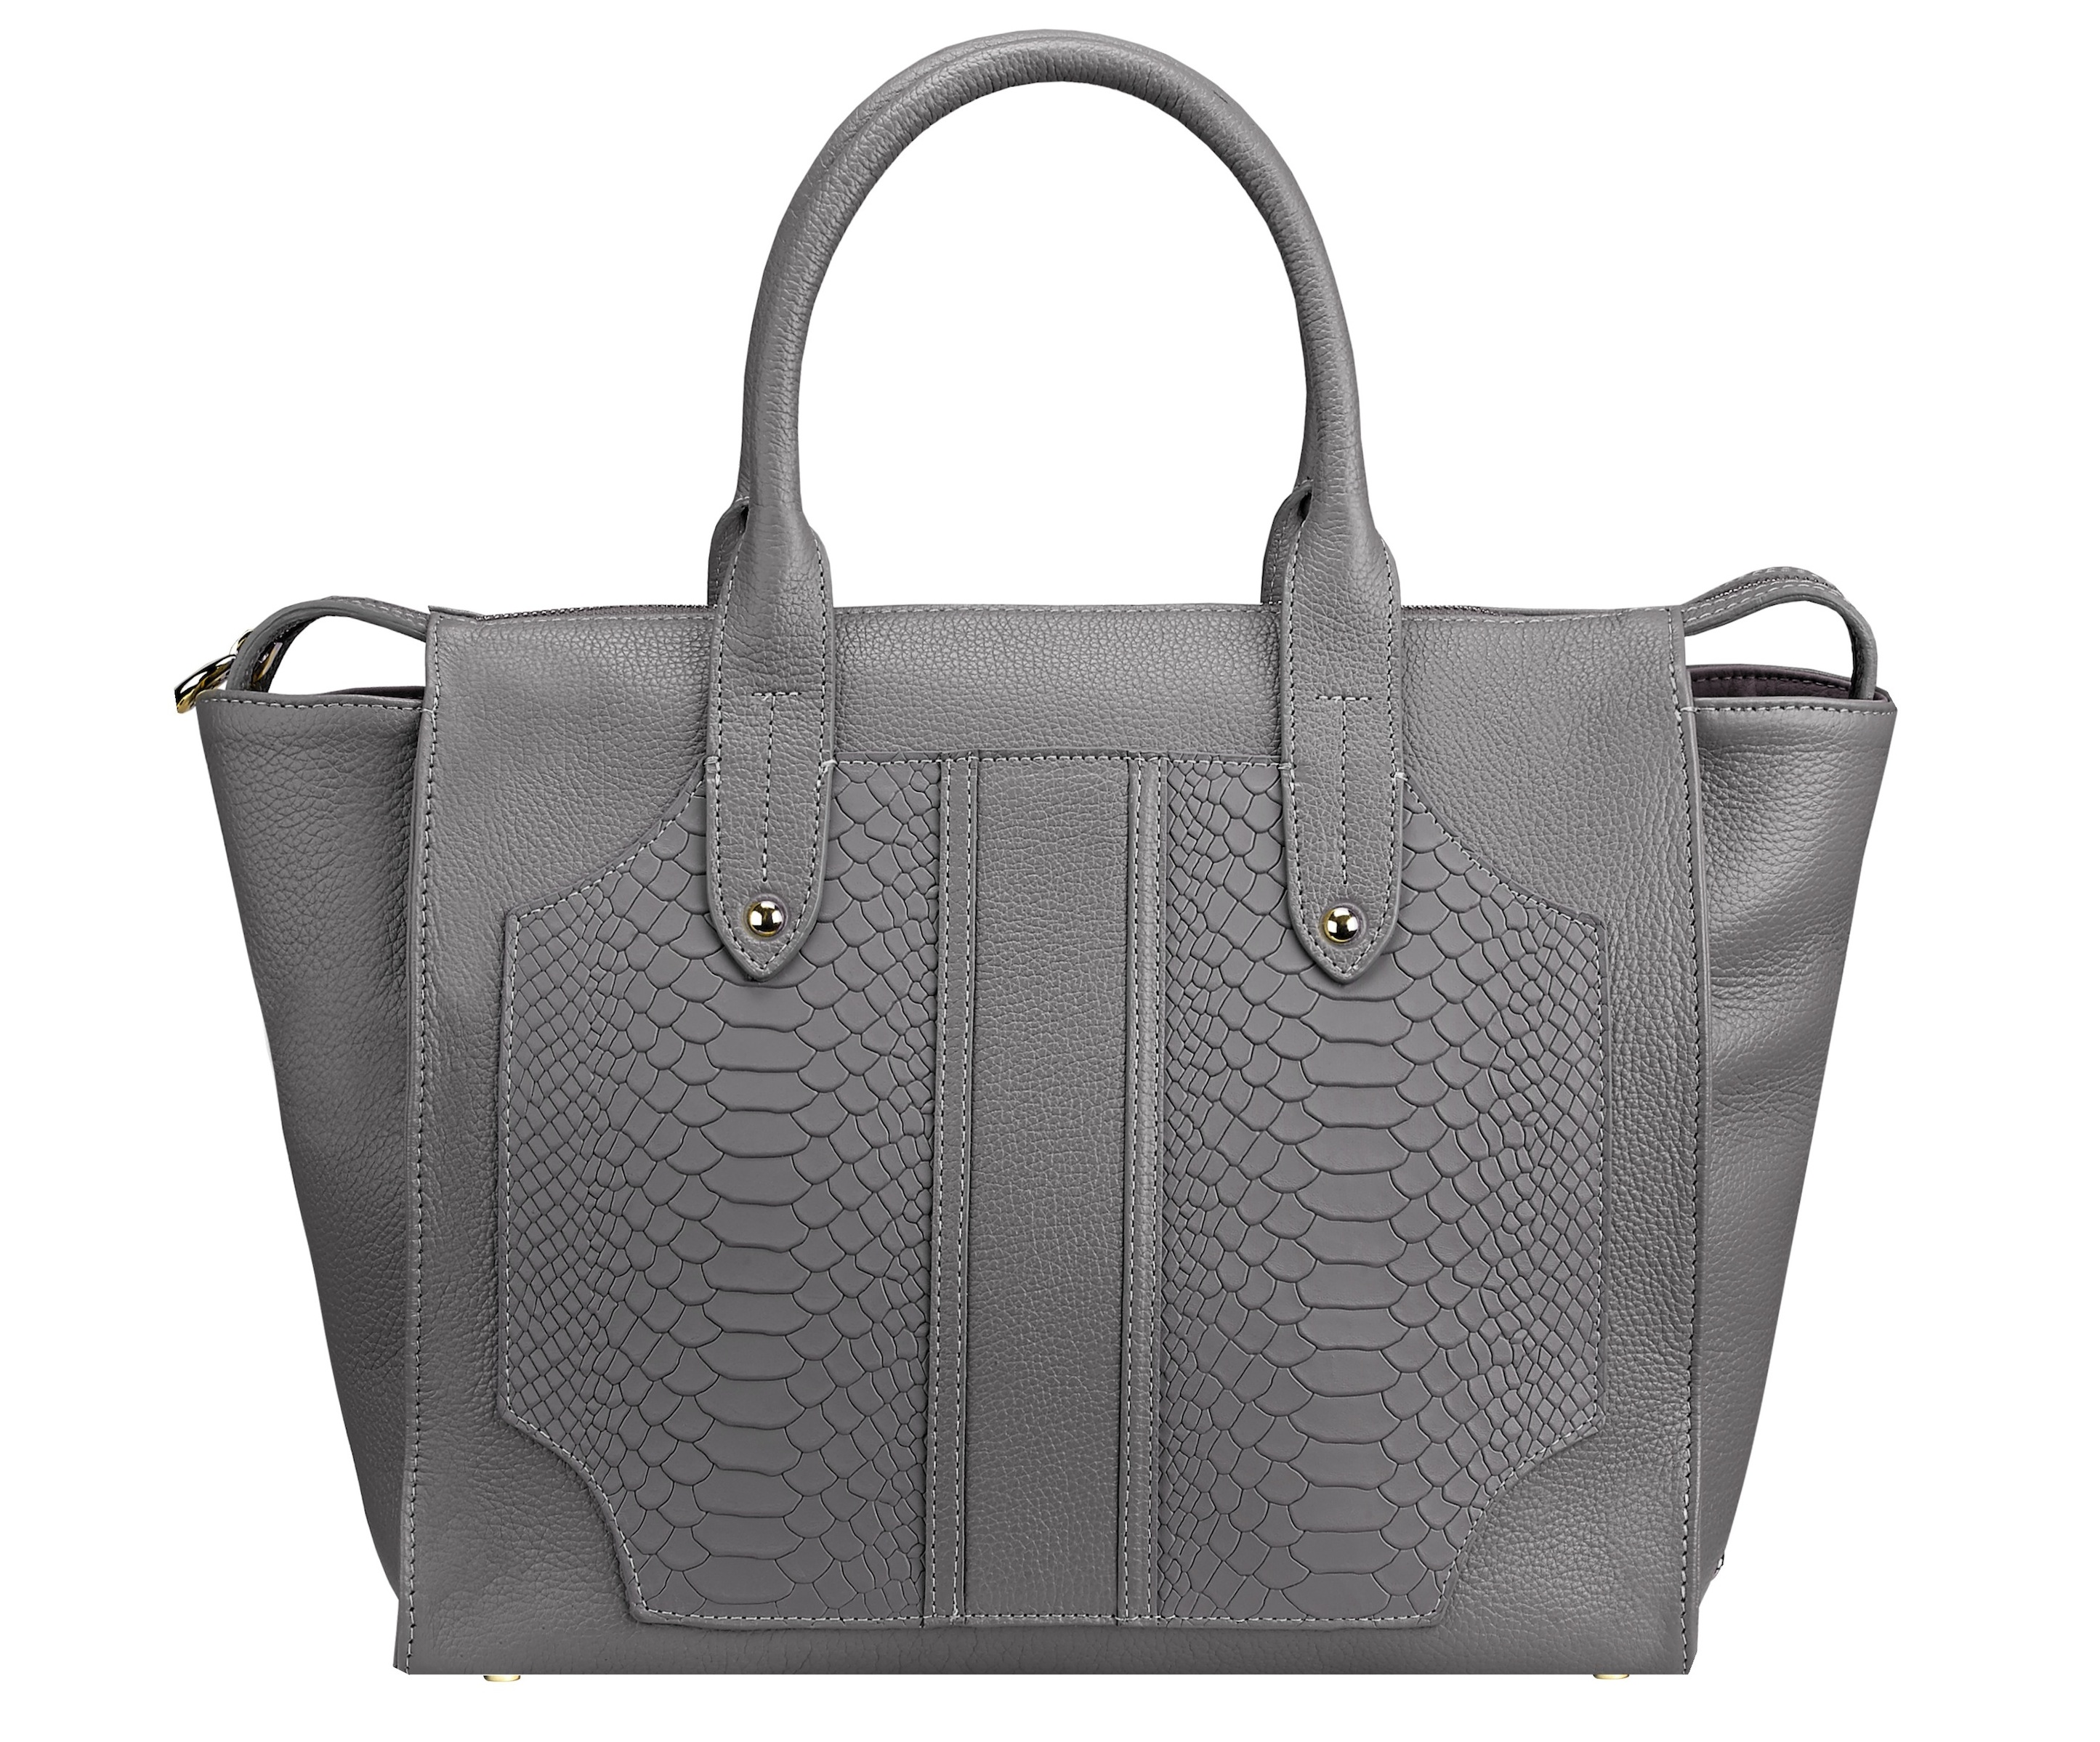 image: Gates Satchel, GiGi New York